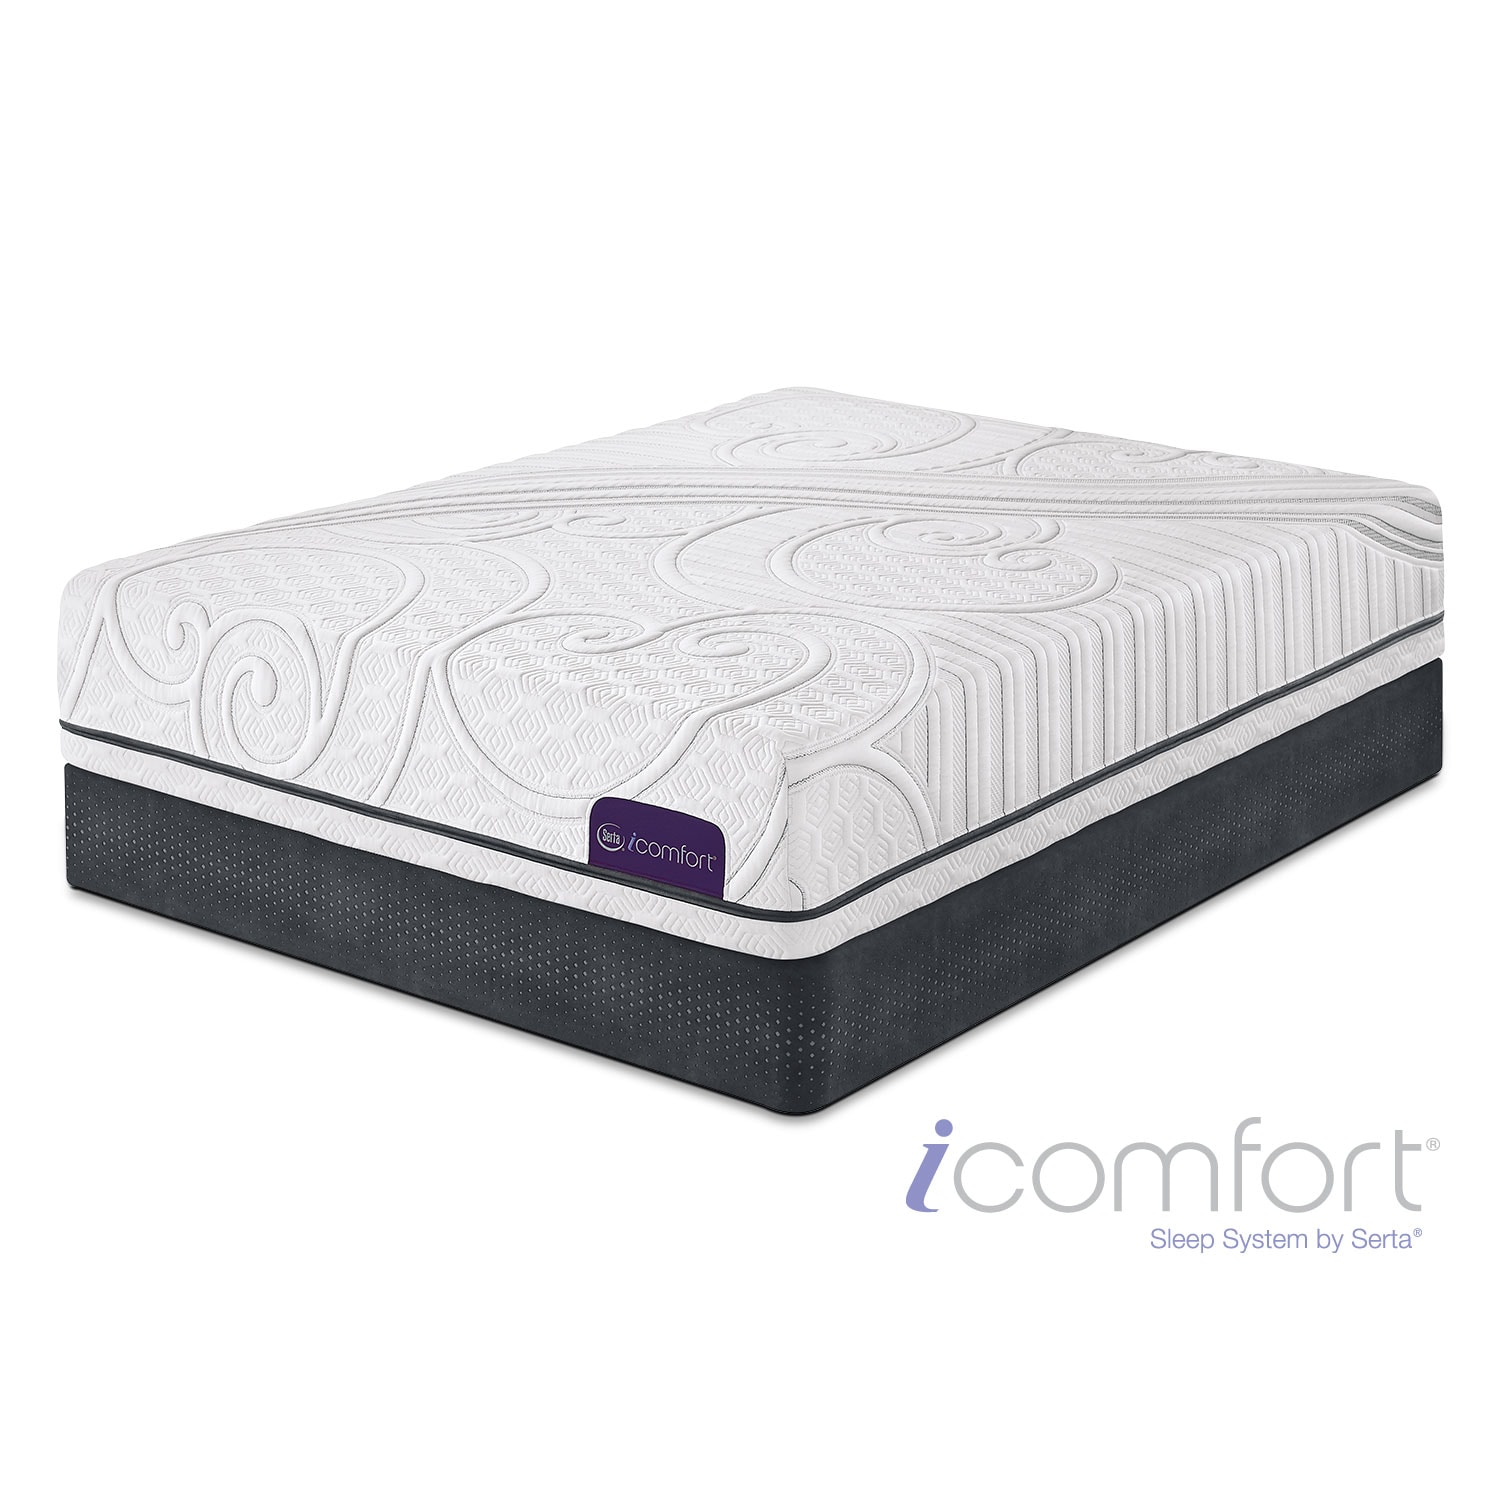 Mattresses and Bedding - iComfort Guidance California King Mattress/Split Foundation Set